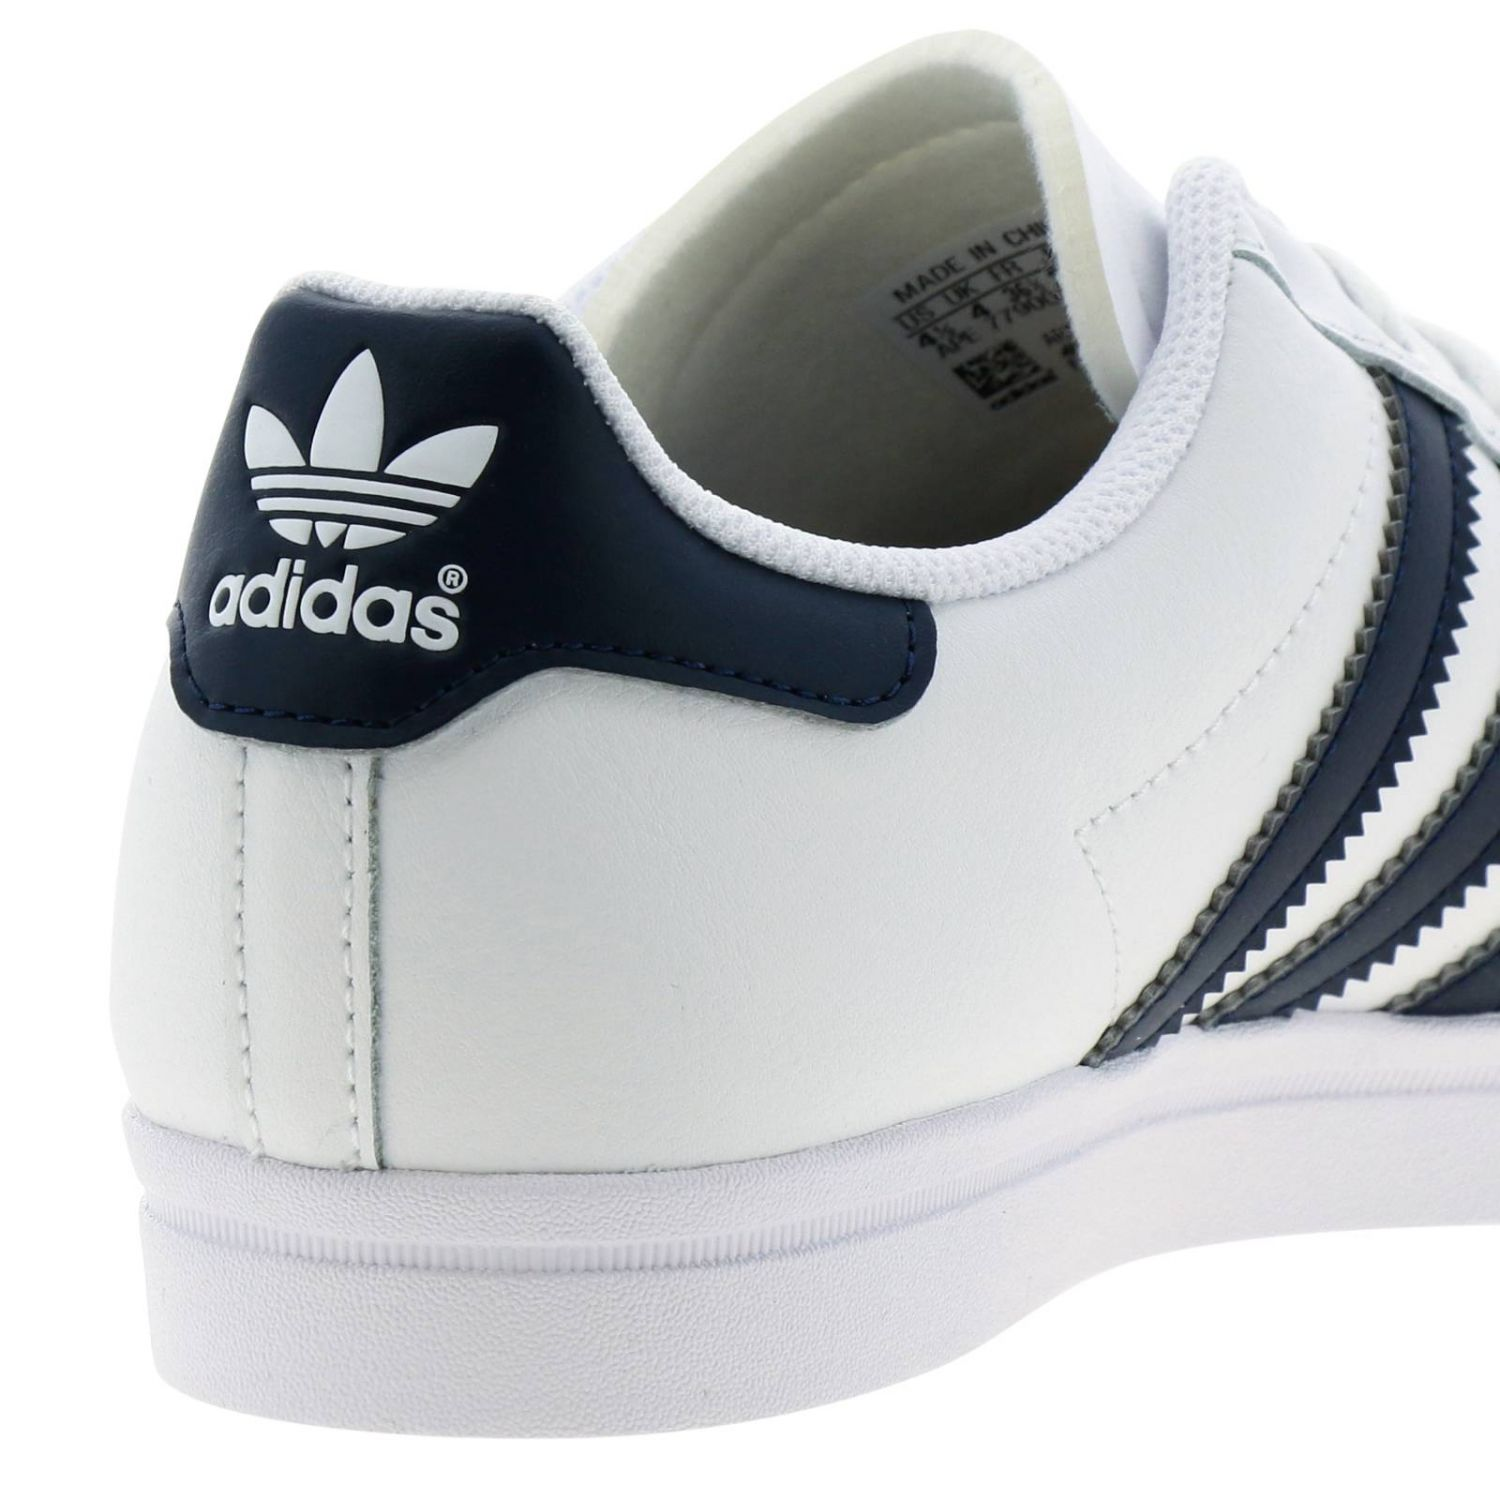 Coast star J Adidas Originals sneakers in leather with contrasting bands white 4